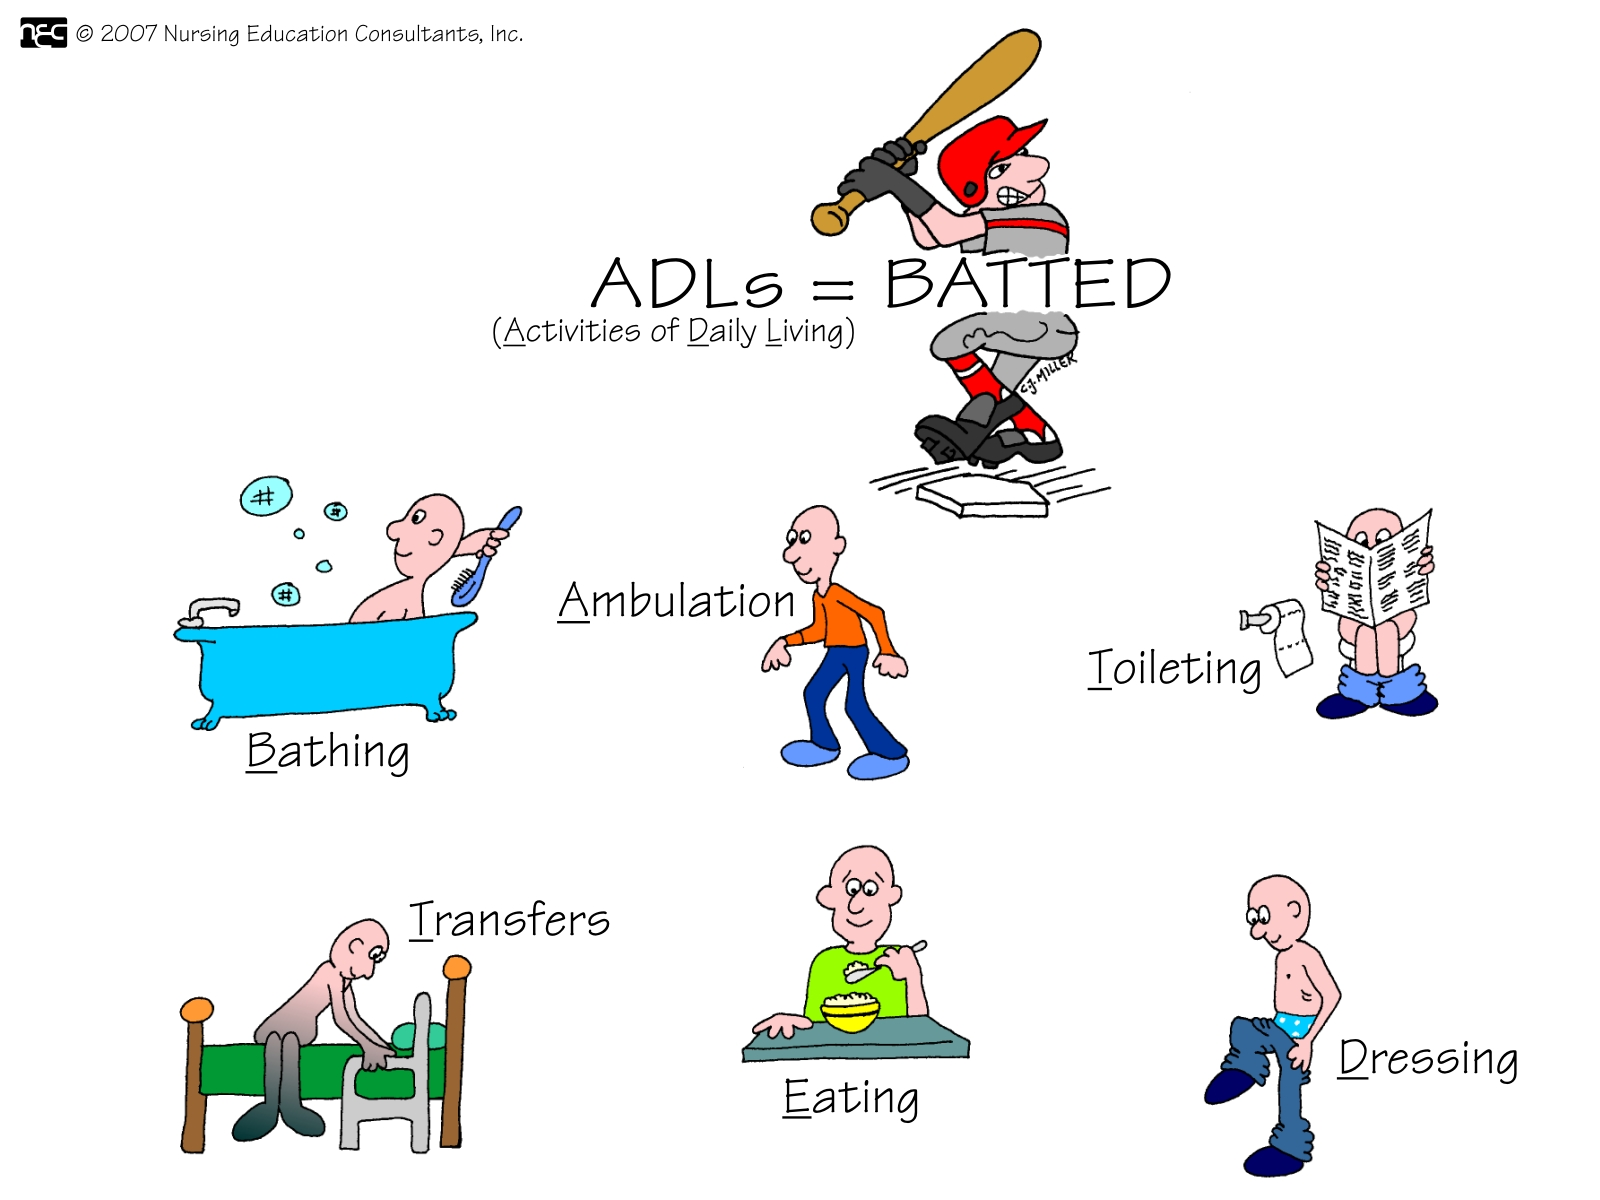 ADLs and IADLs: Complete Guide To Activities of Daily Living